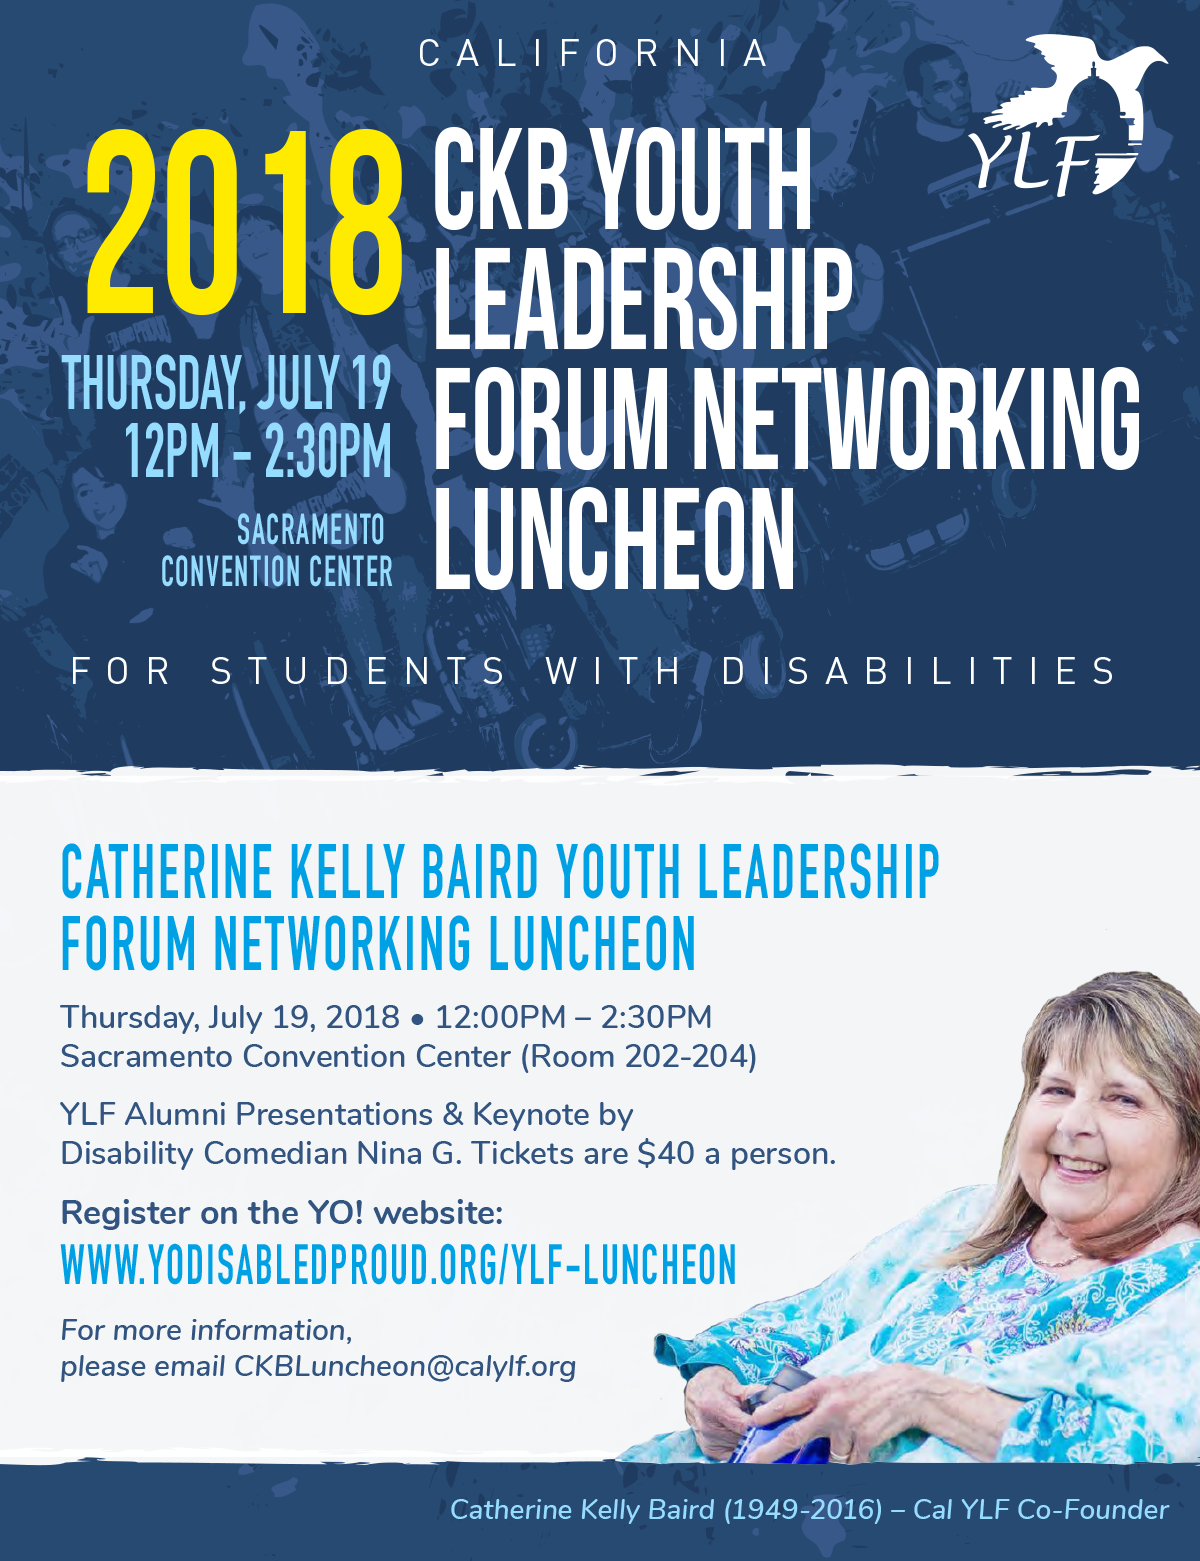 Catherine Kelly Baird YLF Networking Luncheon Thursday, July 19th, 2018 12:00pm - 2:30pm Sacramento Convention Center (Room 202-204) YLF Alumni Presentations & Keynote by Disability Comedian Nina G. Tickets are $40 a person. For more information, please email CKBLuncheon@calylf.org.